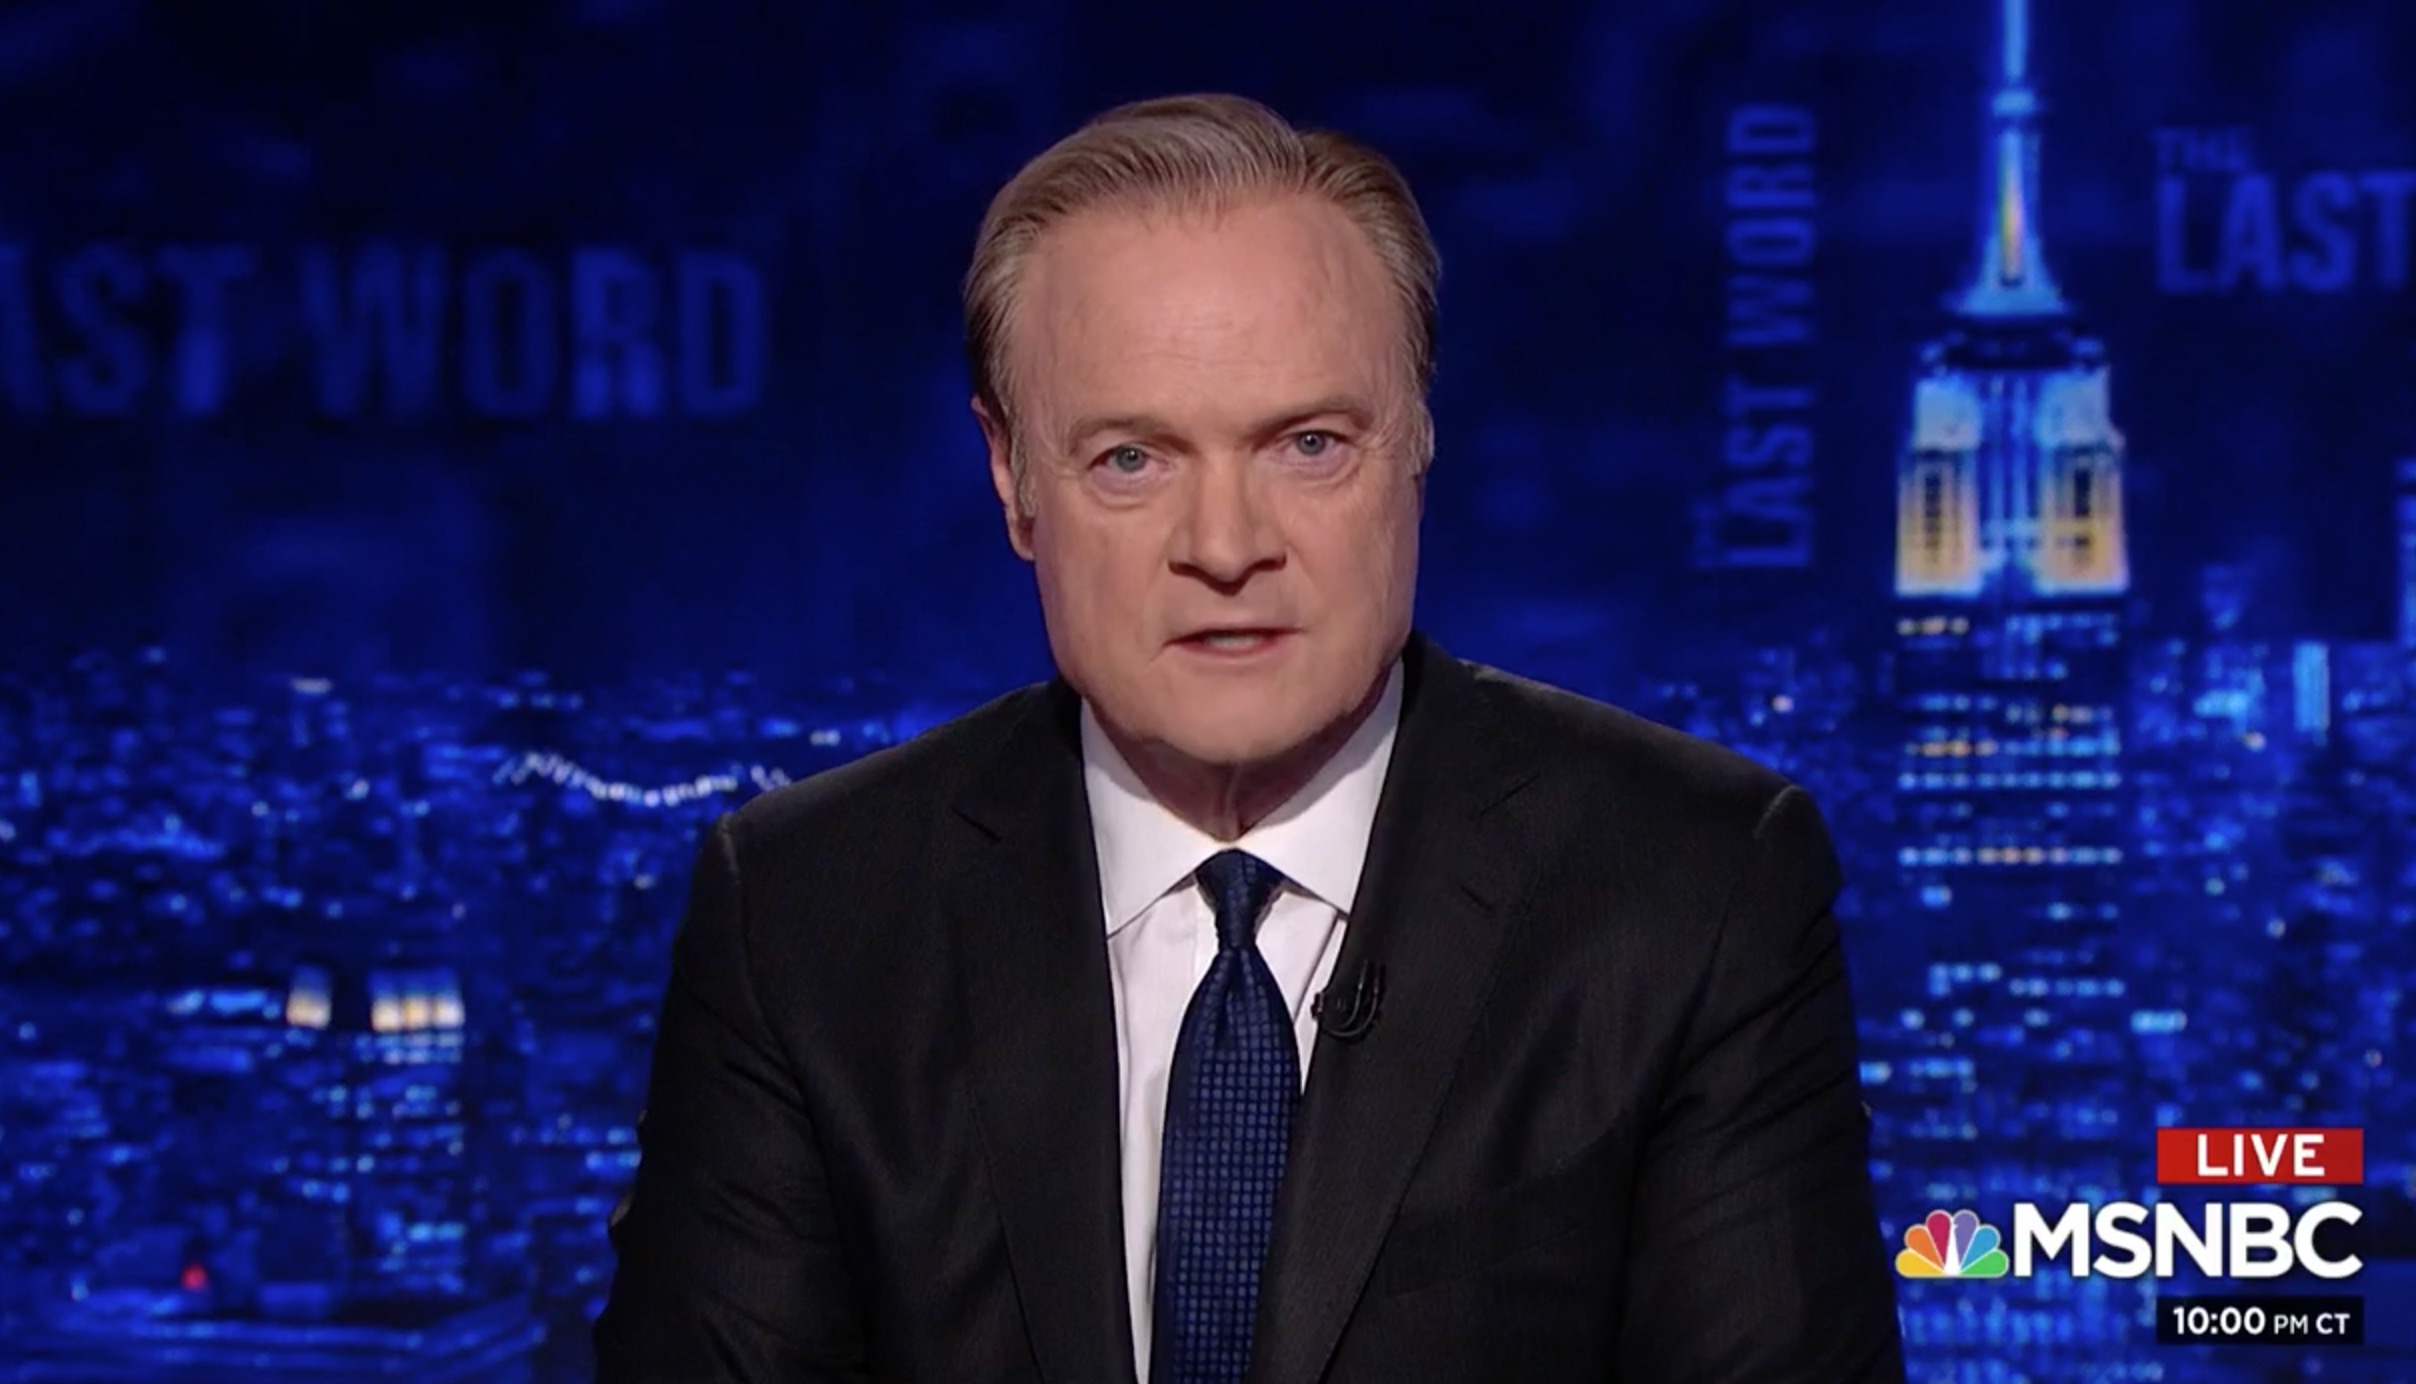 Lawrence O'Donnell Pummeled for 'Grossly Irresponsible,' Thinly-Sourced Claim Russian Oligarchs Co-Signed Trump's Loans